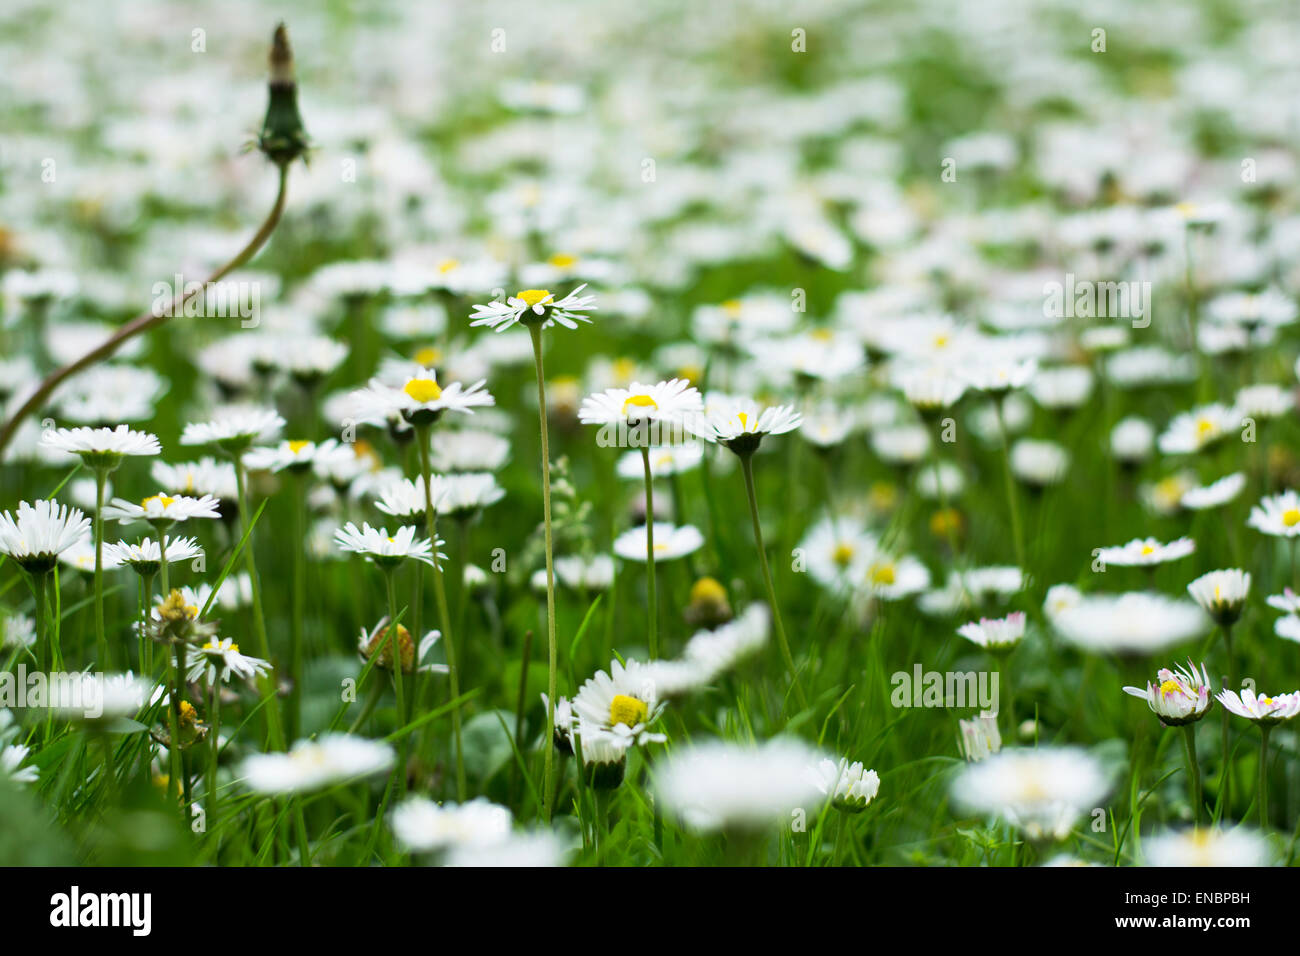 Lots Of Tiny White Flowers Blooming In The Grass Stock Photo